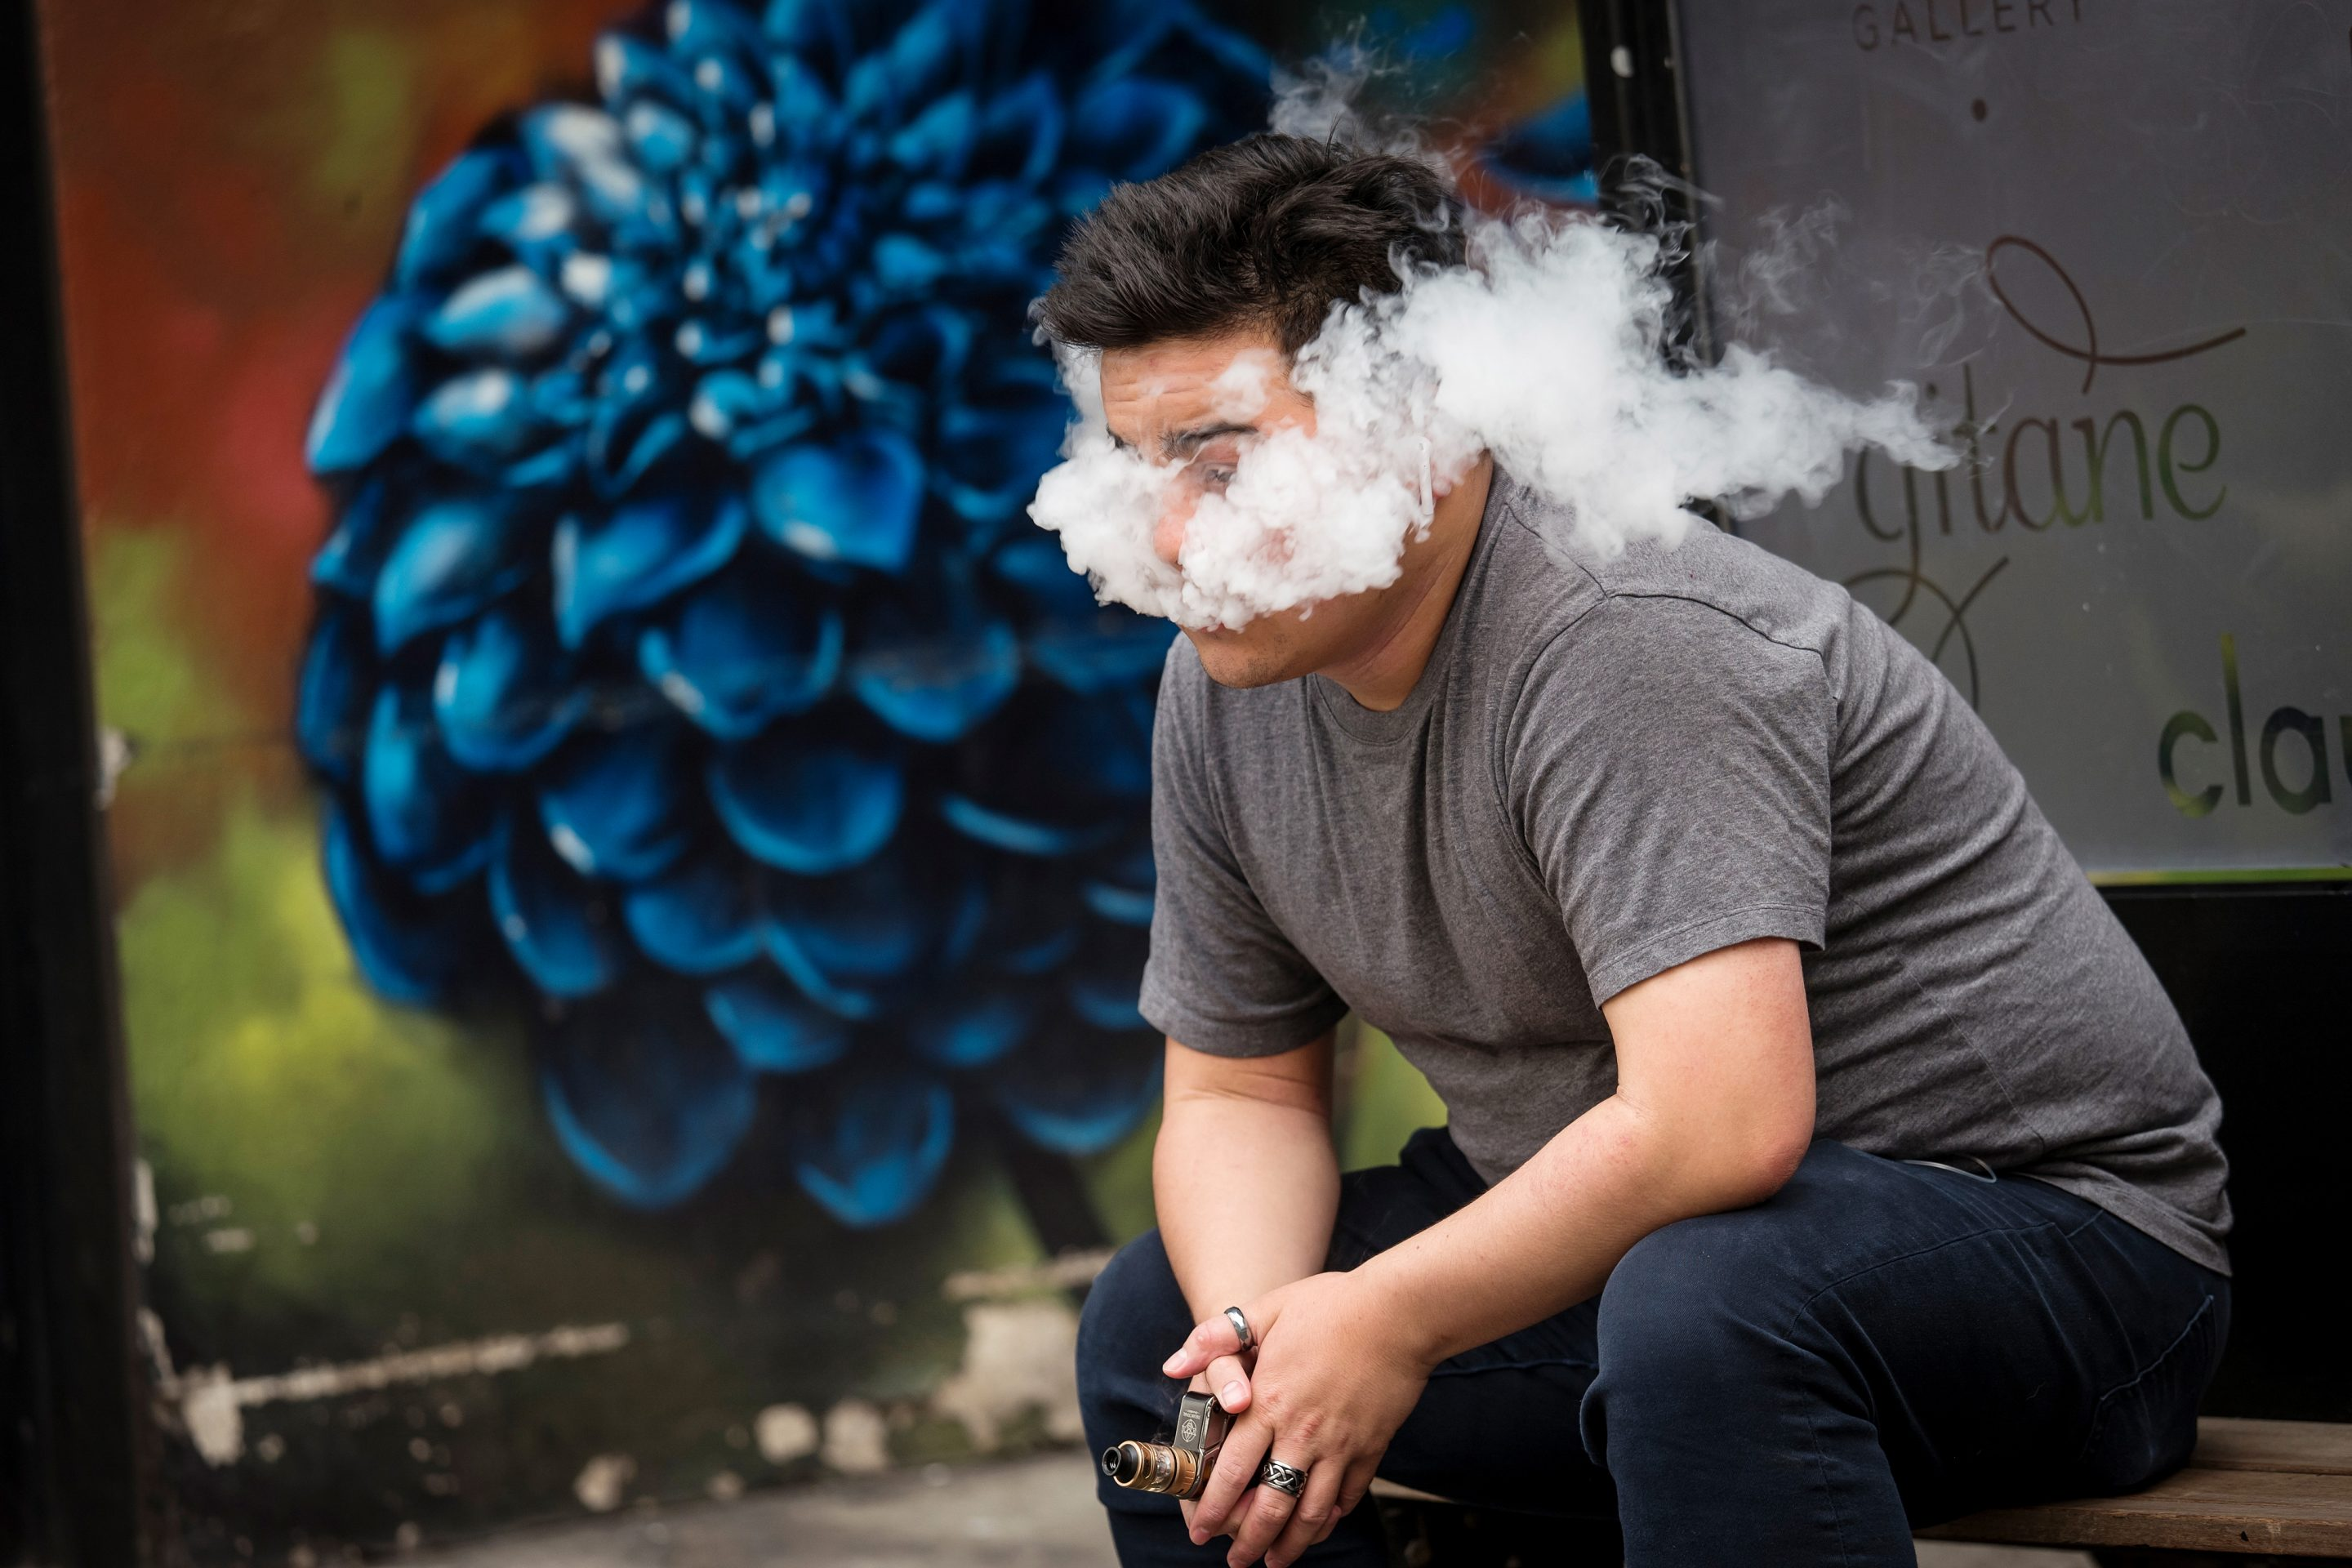 San Francisco Set To Become First U.S. City To Ban E-Cigarettes